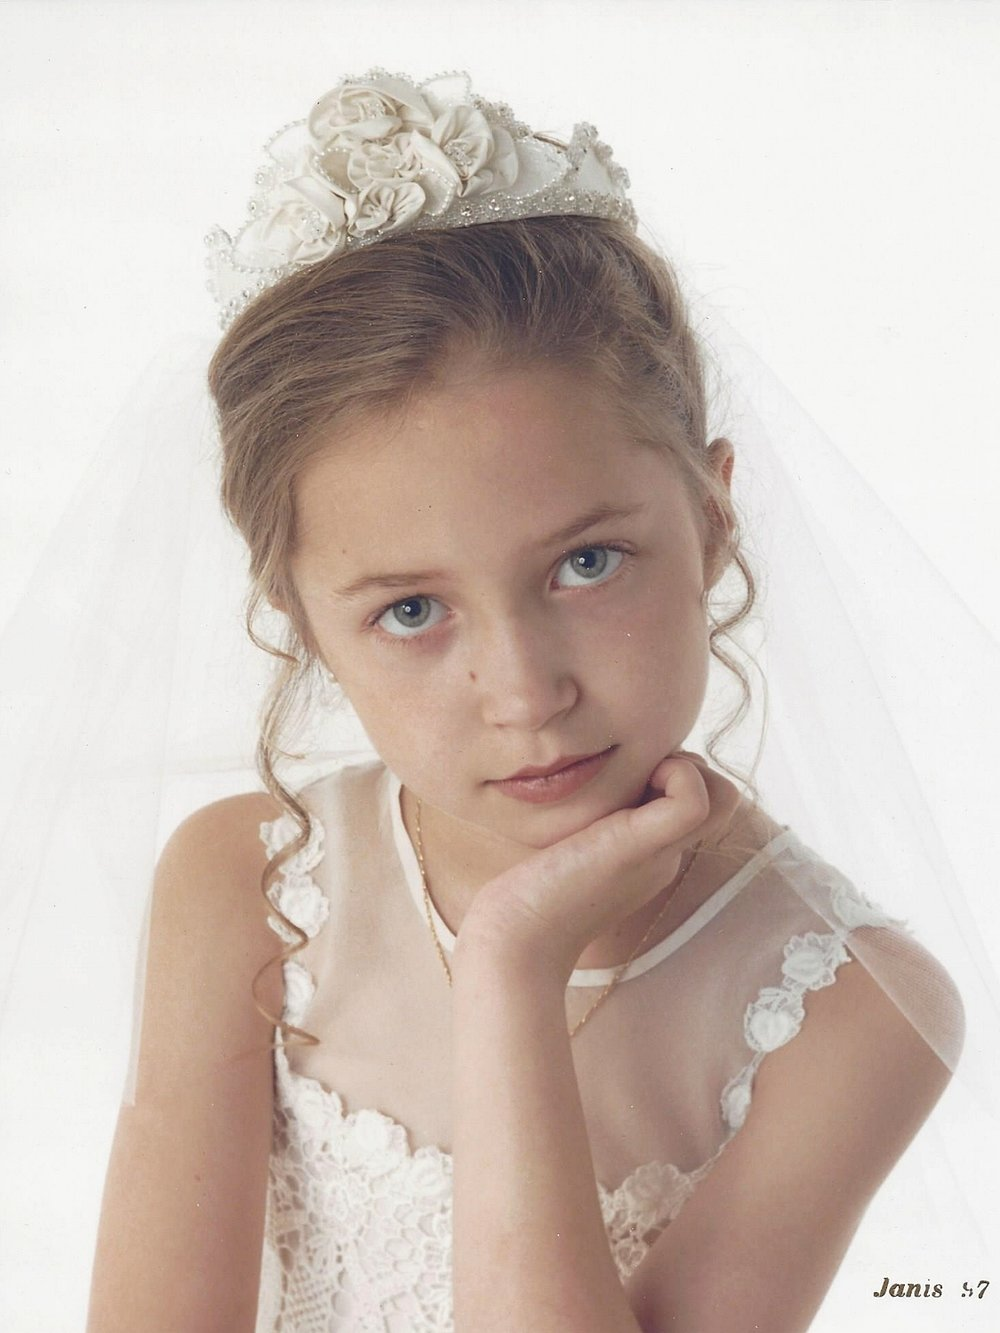 Brielle's holy communion dress and headpiece were designed from silk taffeta, silk organza, and French Guipure lace. Her 1997 dress design was a classic and could still be worn today.